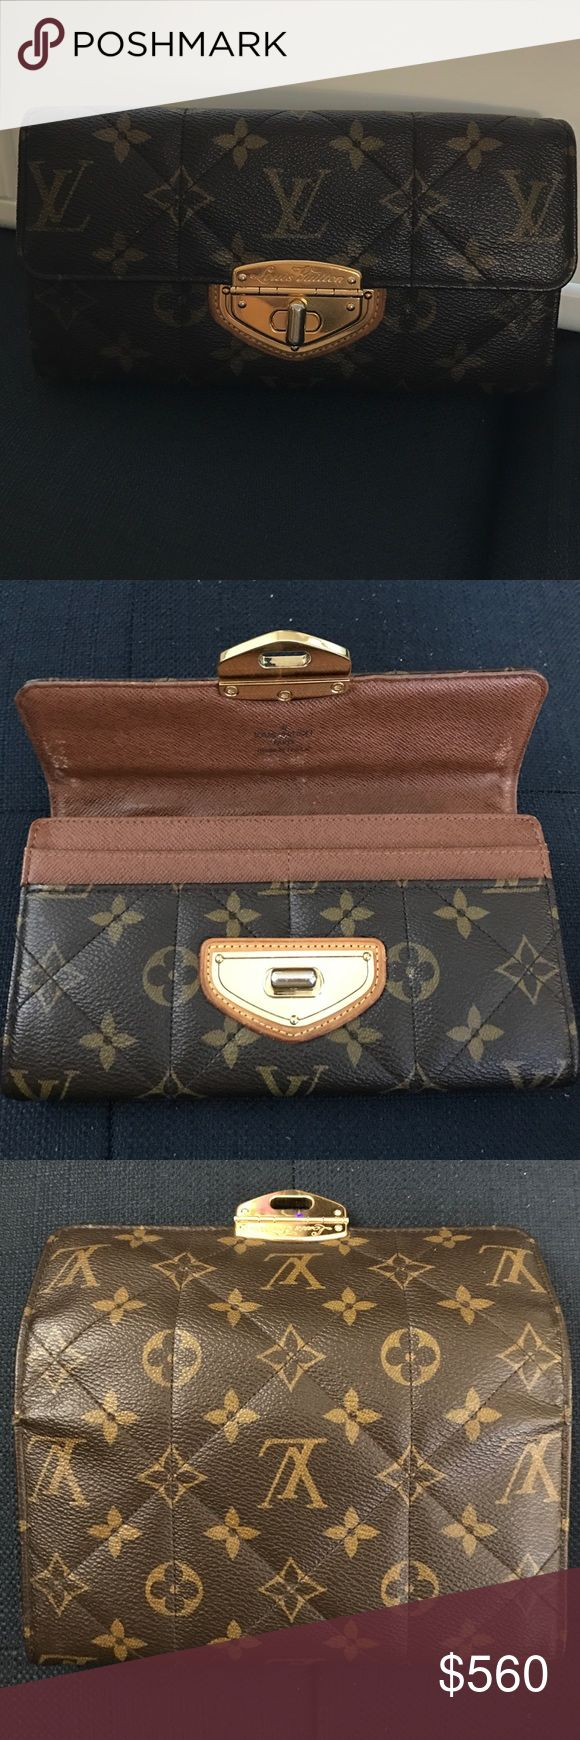 100% Authentic Louis Vuitton Etoile Sarah wallet 100% Authentic Louis Vuitton Etoile Sarah wallet monogram without box/ receipt. I purchased it at Louis Vuitton in Century City mall in Los Angeles (in 2010). No rips or cracks. But there are marks and sign of wear. Made in France and date code is SP0130.                           Please ask me more pictures in order to avoid unnecessary return. It's sold as is.  Please no trade. Louis Vuitton Bags Wallets